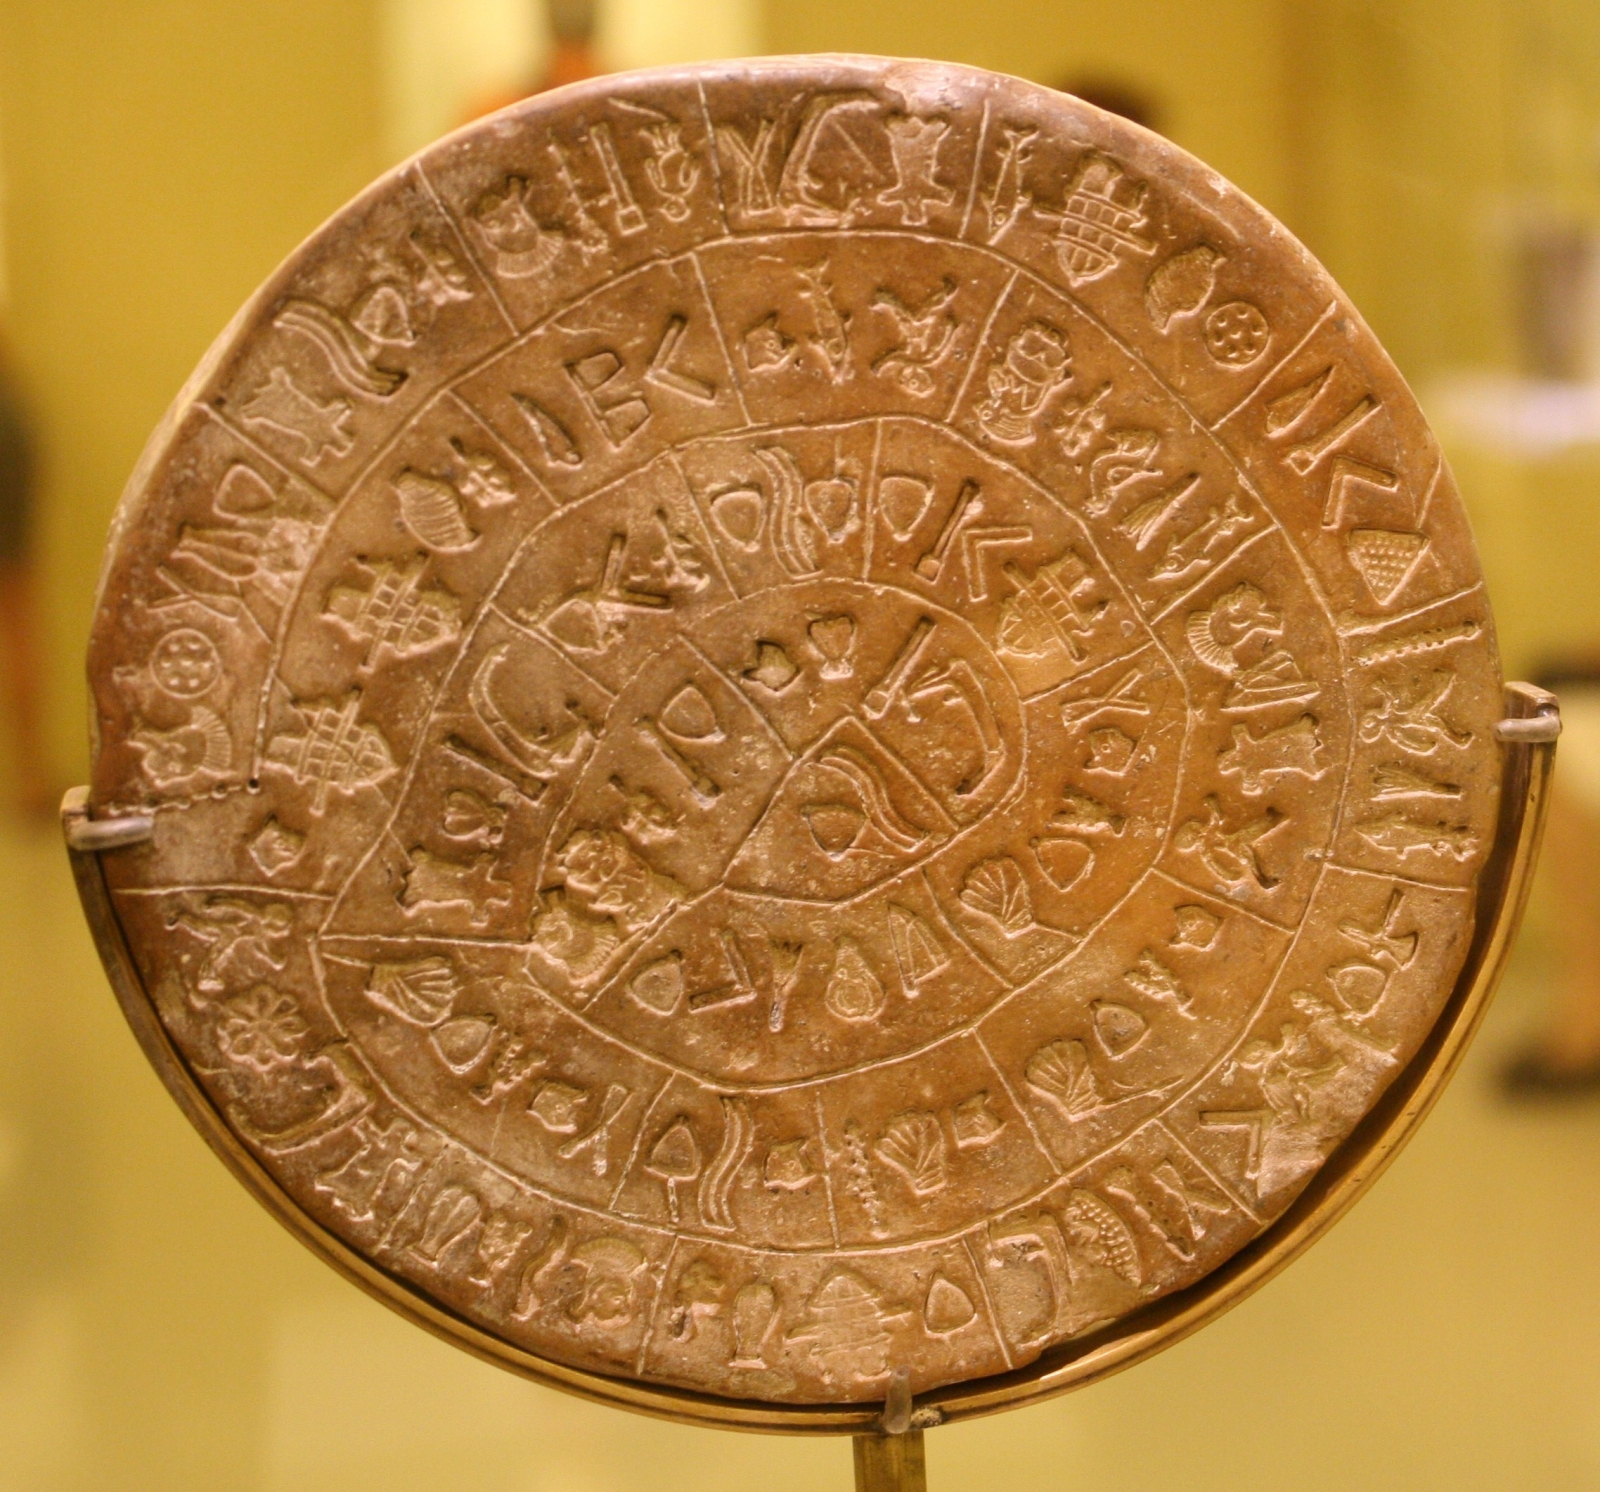 The Phaistos disk is the earliest form of printing in the world